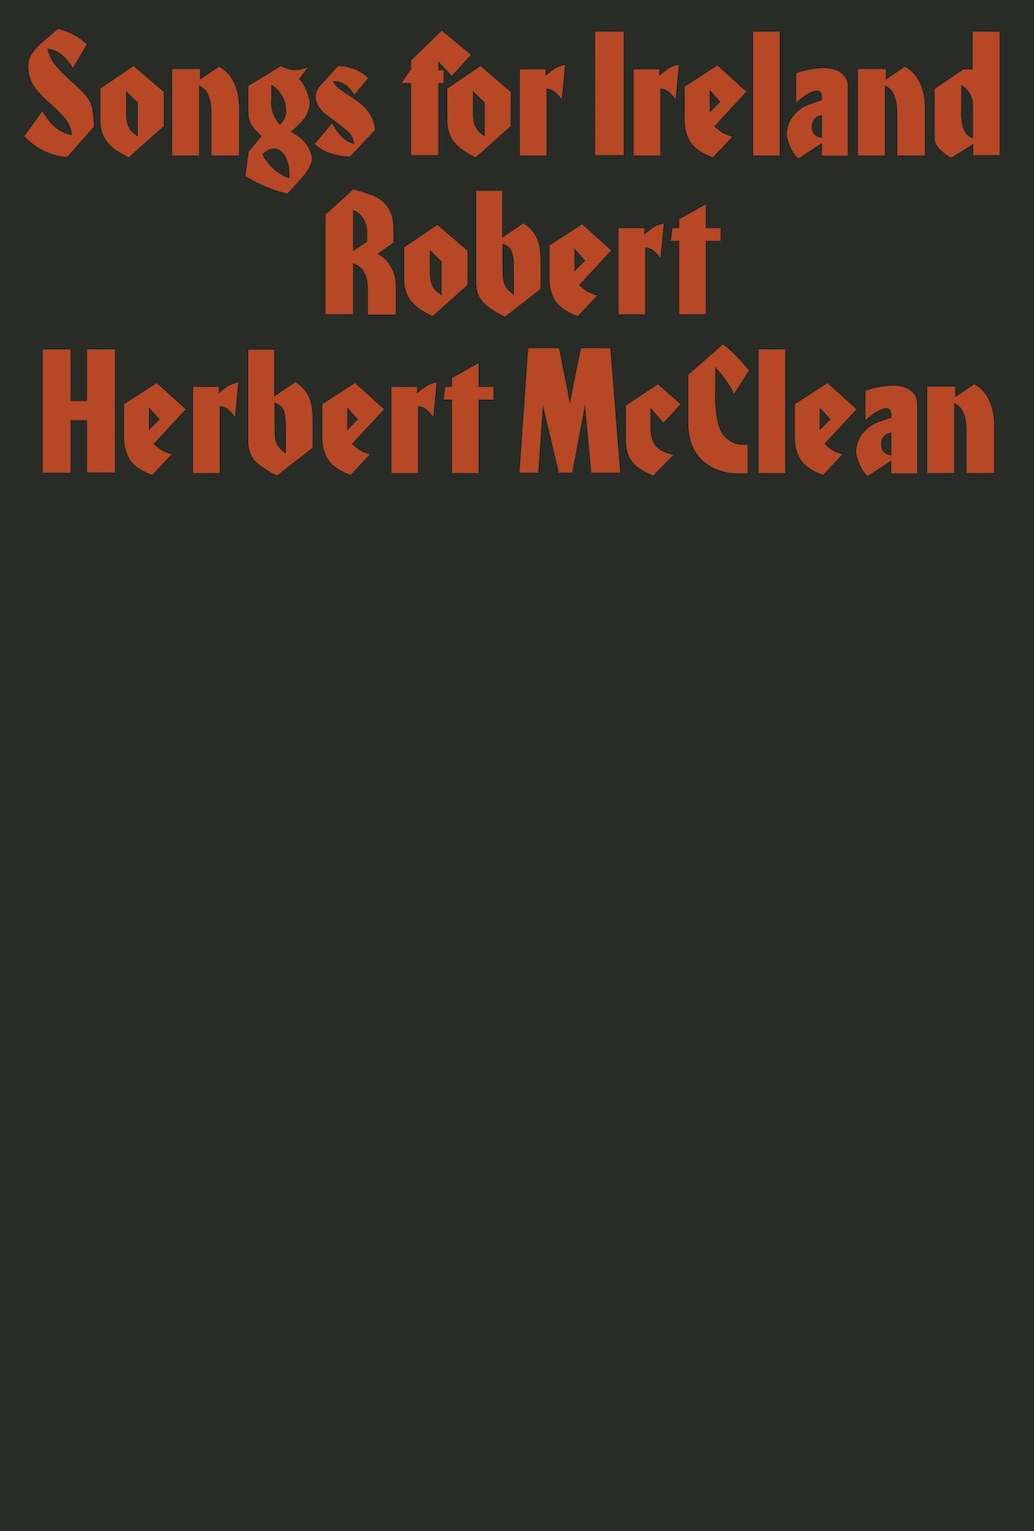 Robert Herbert McClean, Songs for Ireland. Prototype